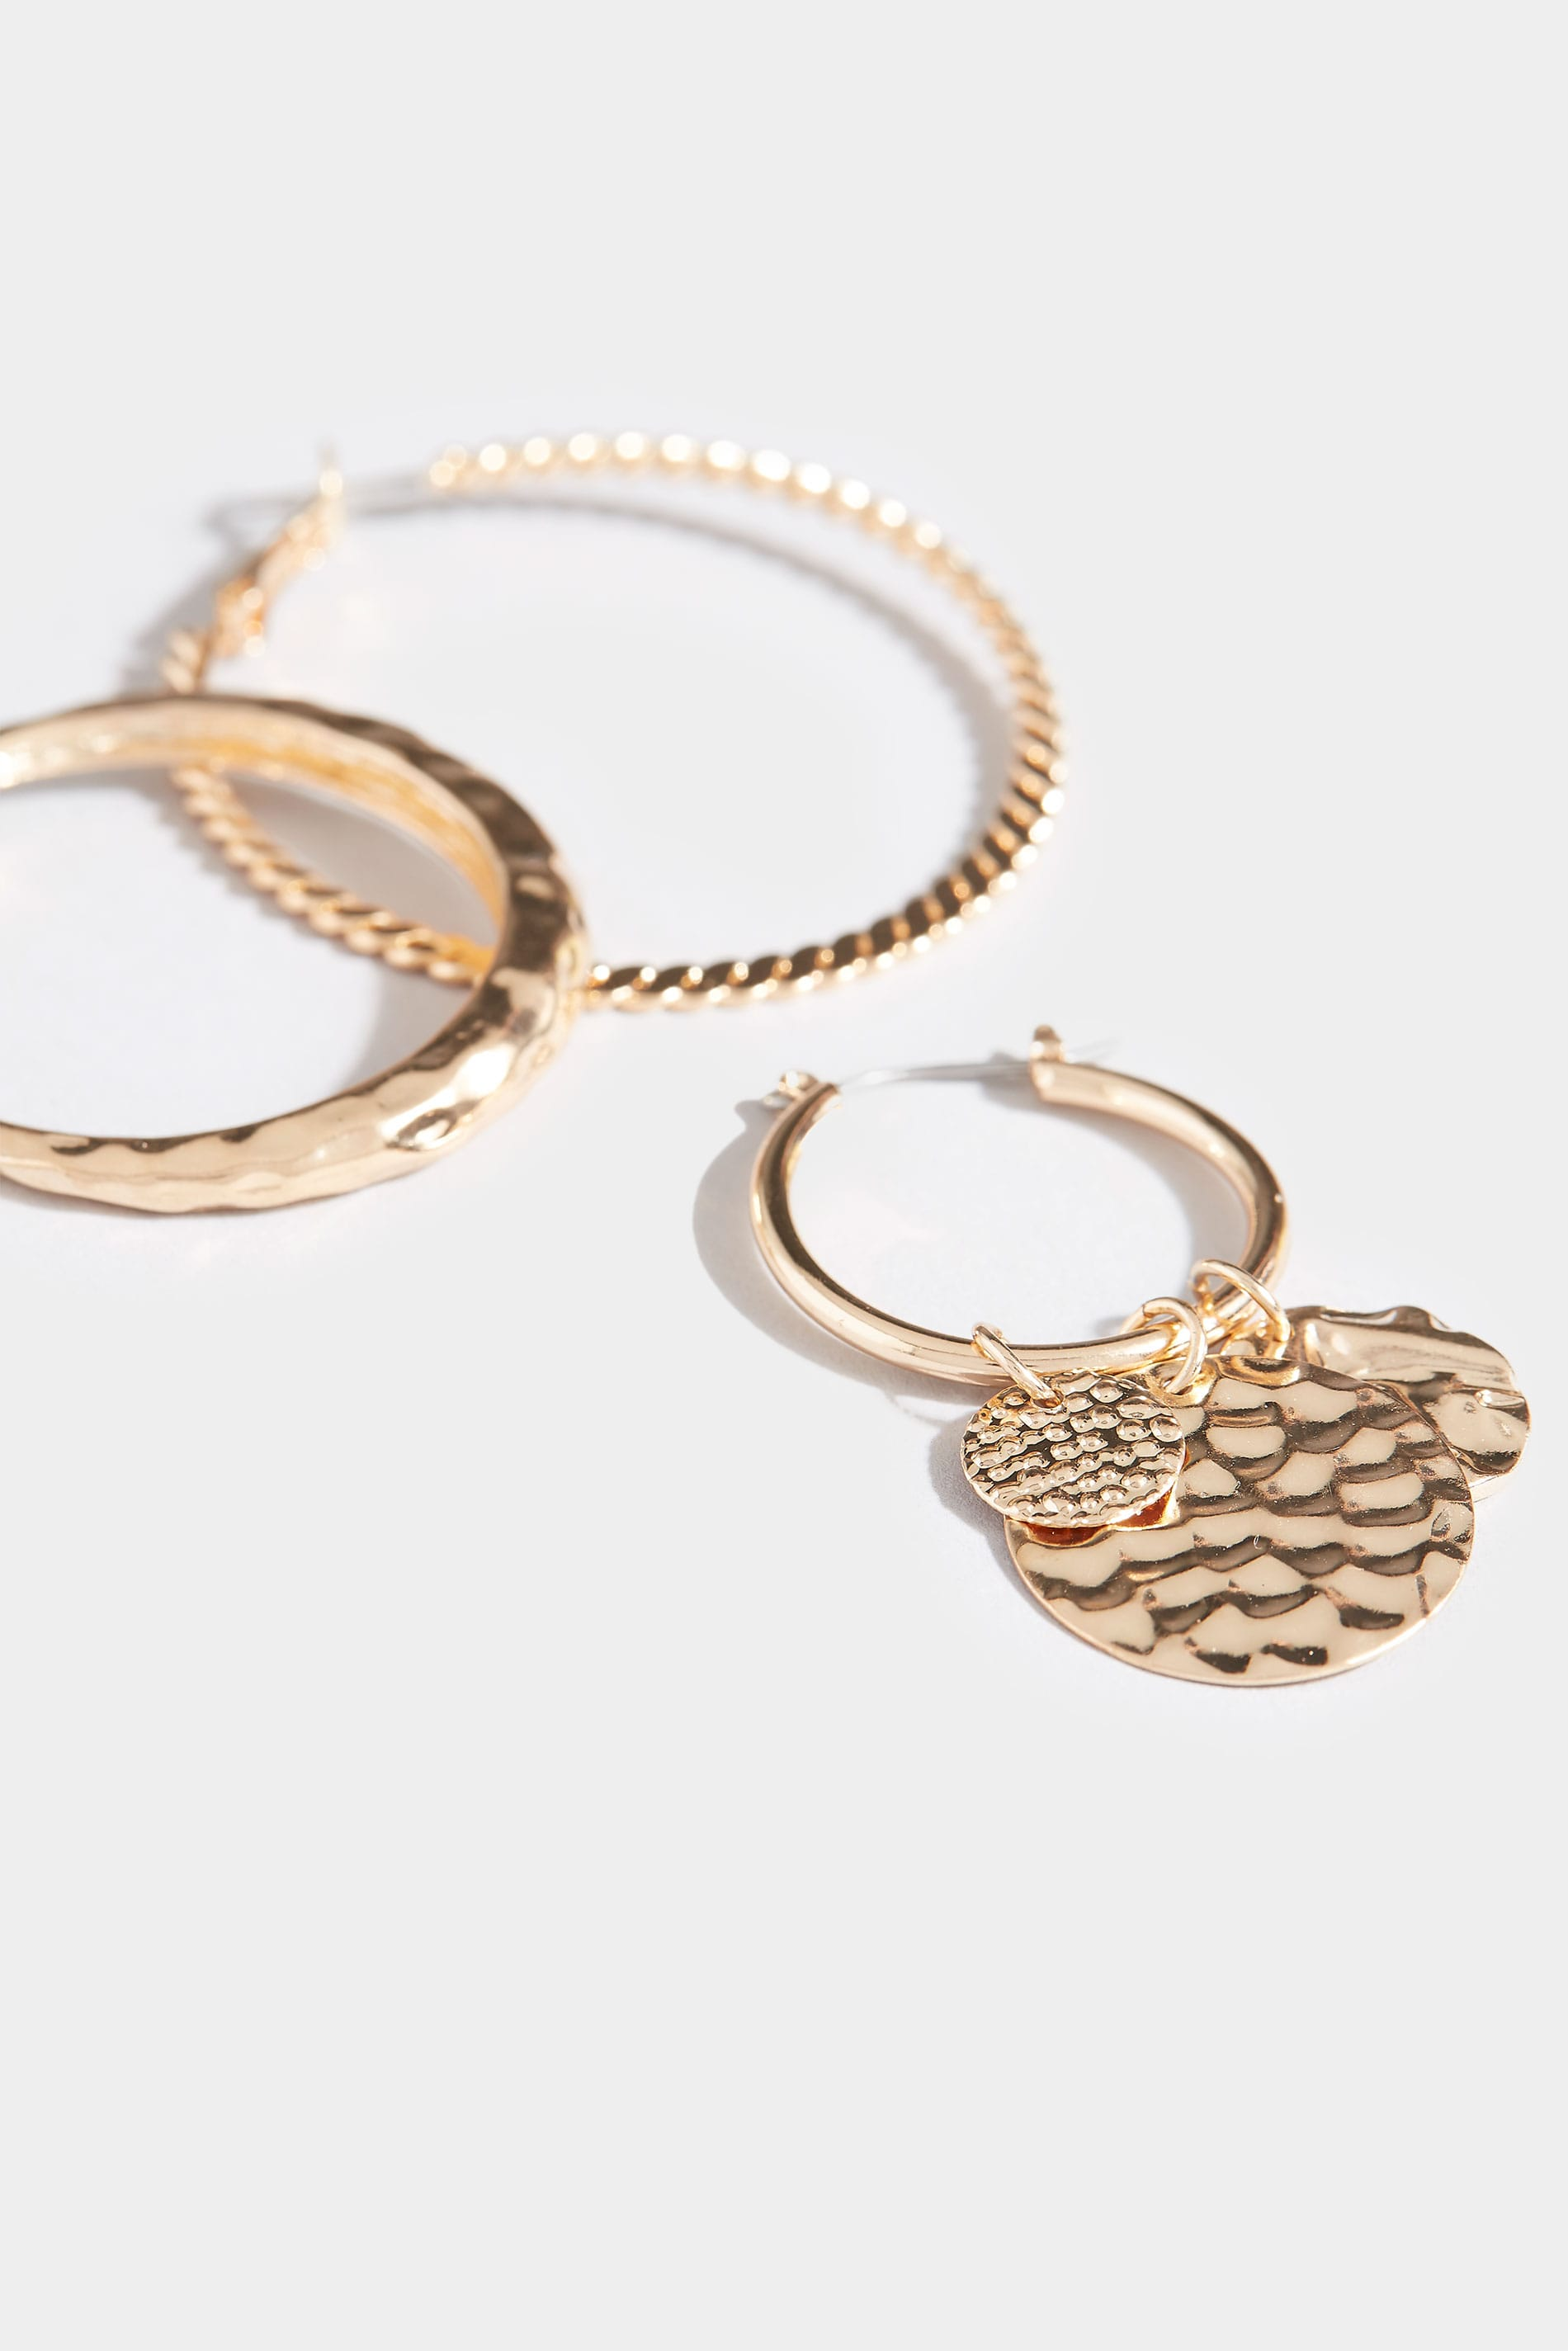 3 PACK Gold Textured Hoop Earrings Set | Yours Clothing